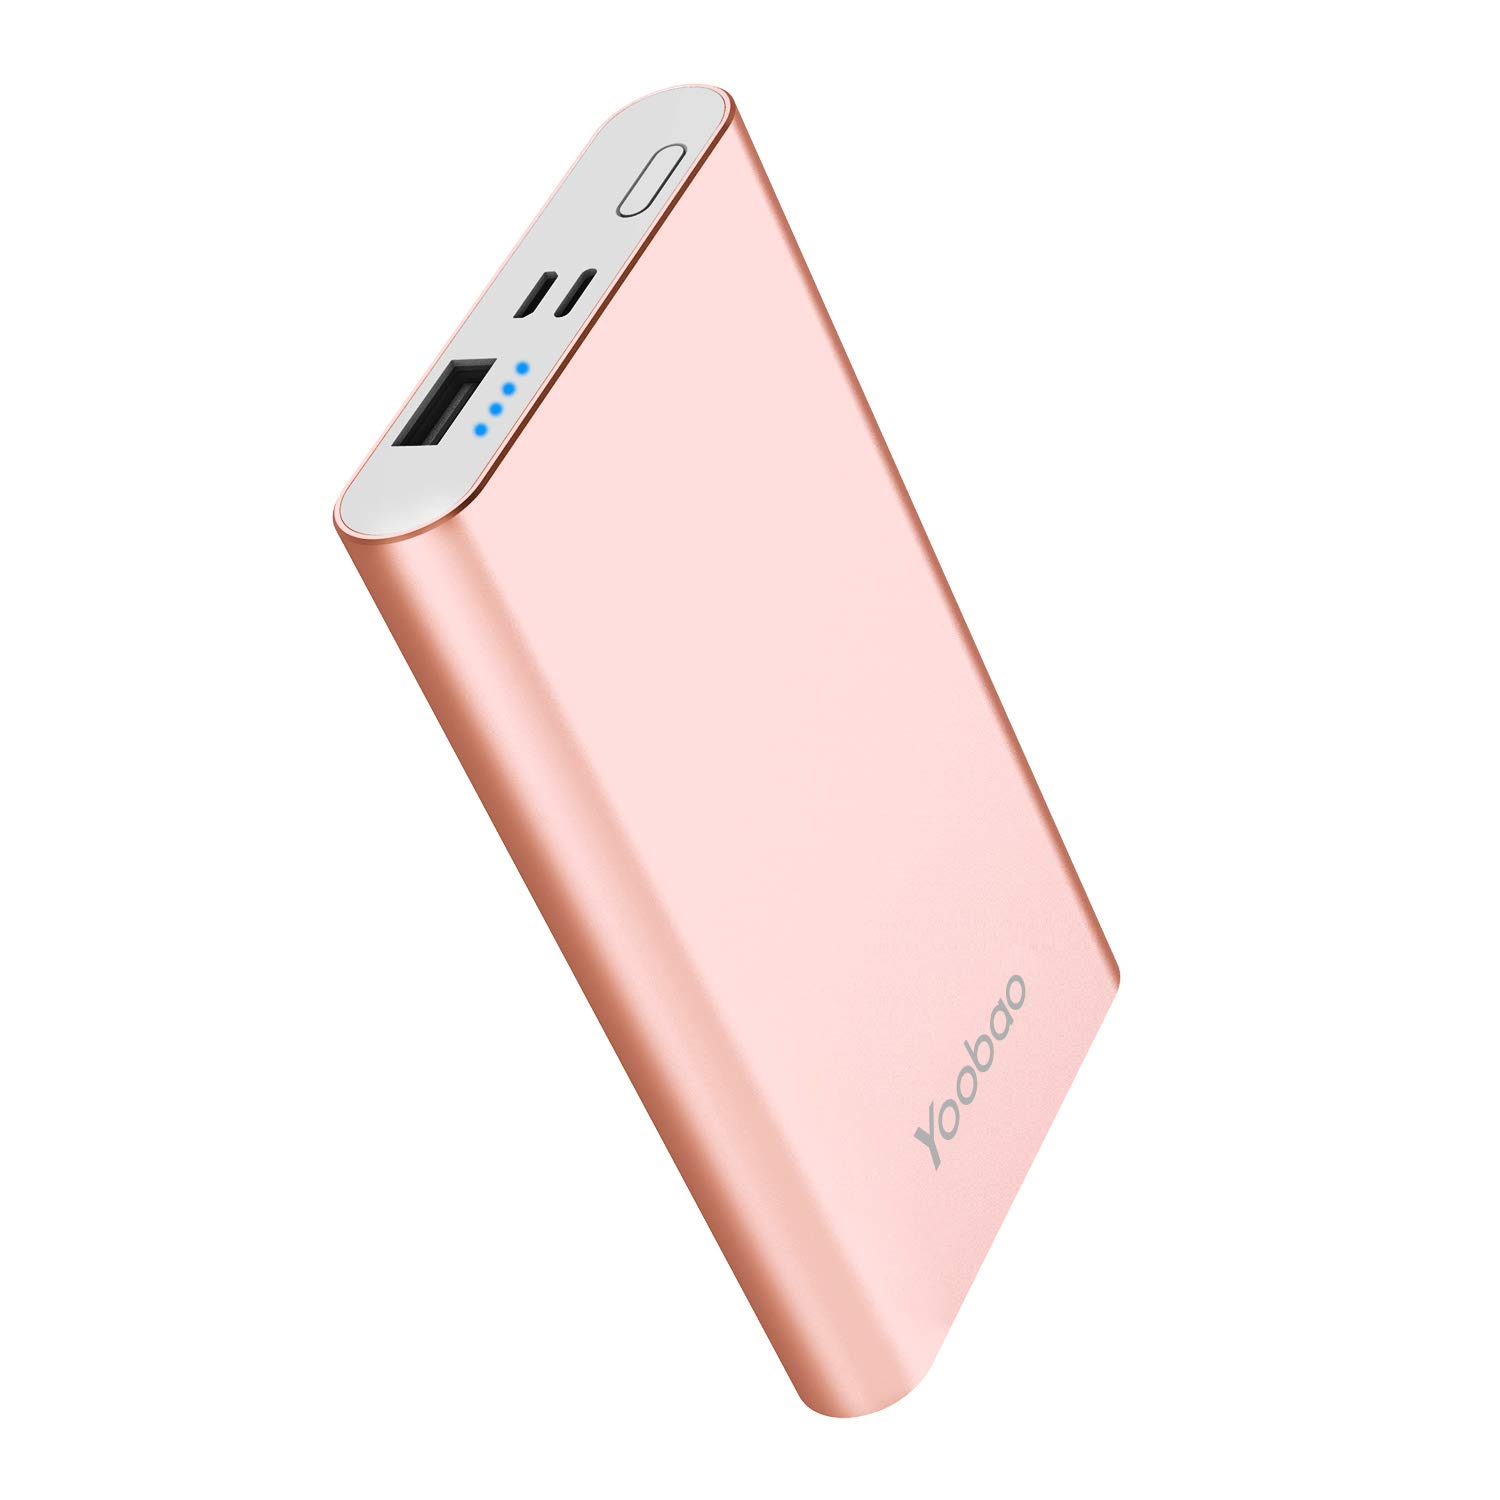 Portable Charger Yoobao Power Bank Apple & Micro Input 8000mAh Compact Powerbank External Cellphone Battery Backup Pack Compatible iPhone X 8 7 6 Plus Android Smartphone Samsung Galaxy etc- Rose Gold